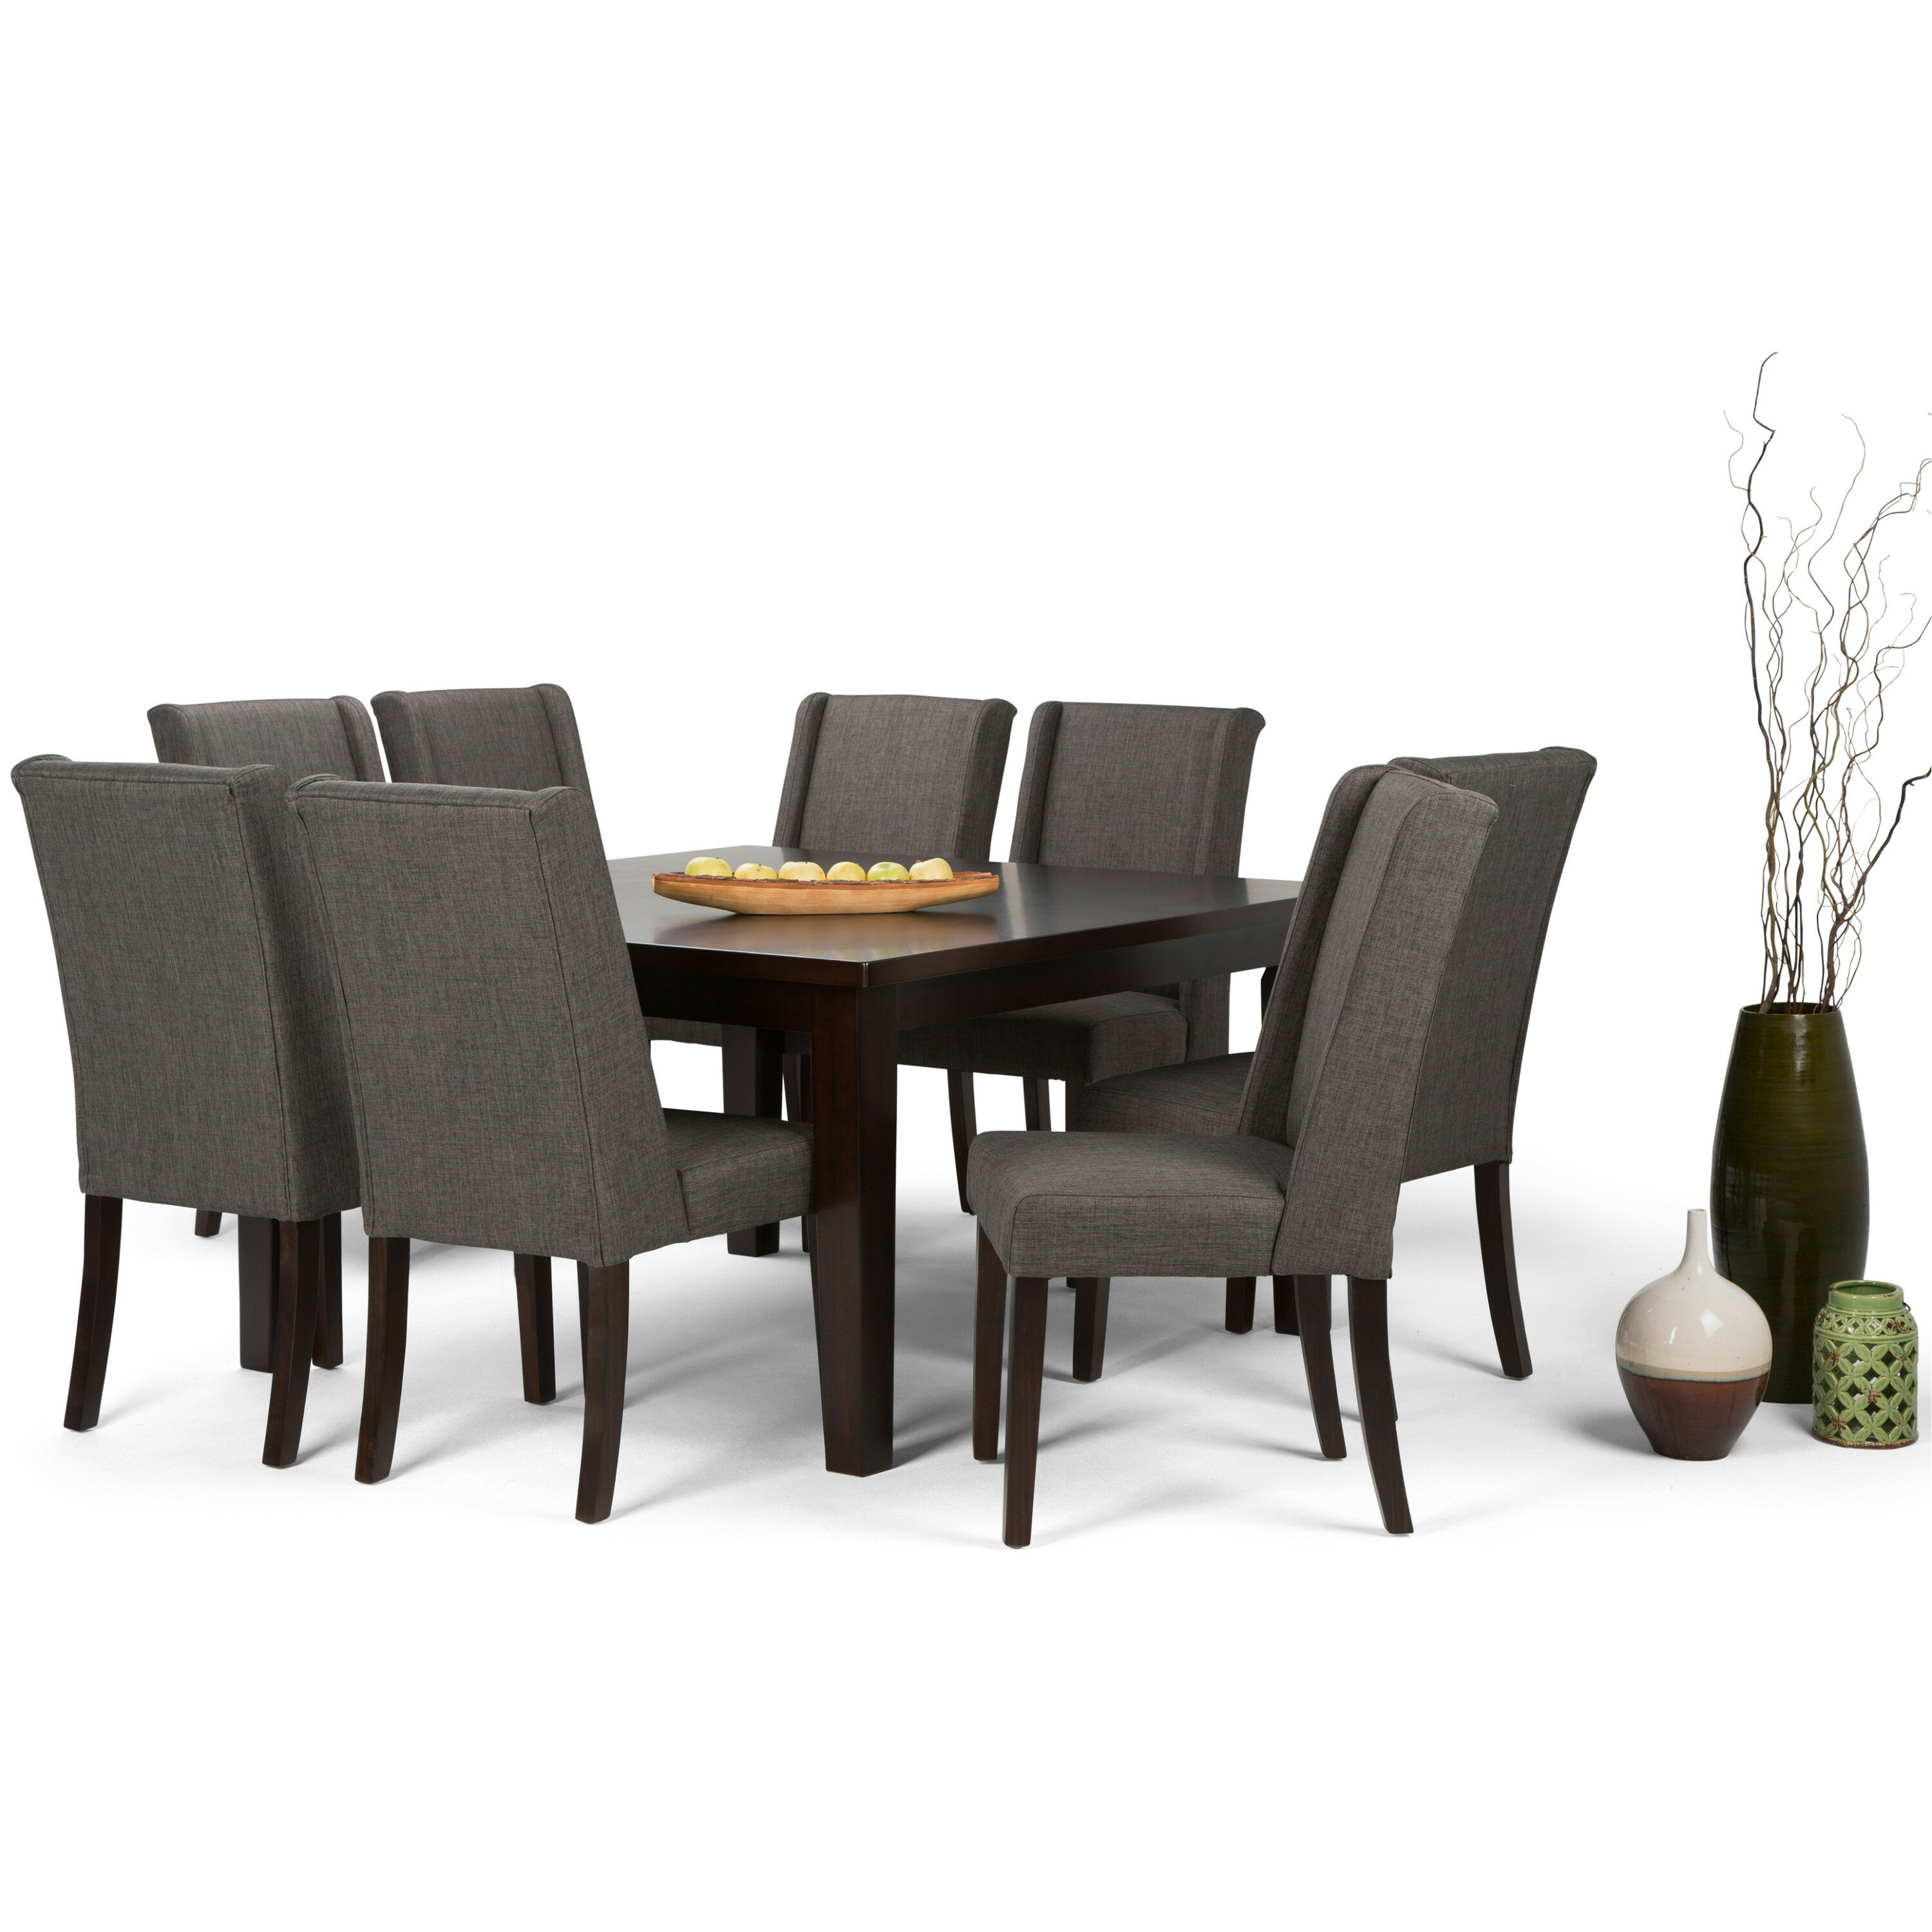 Simpli home sotherby 9 piece dining set wayfair for Dining room tables 9 piece